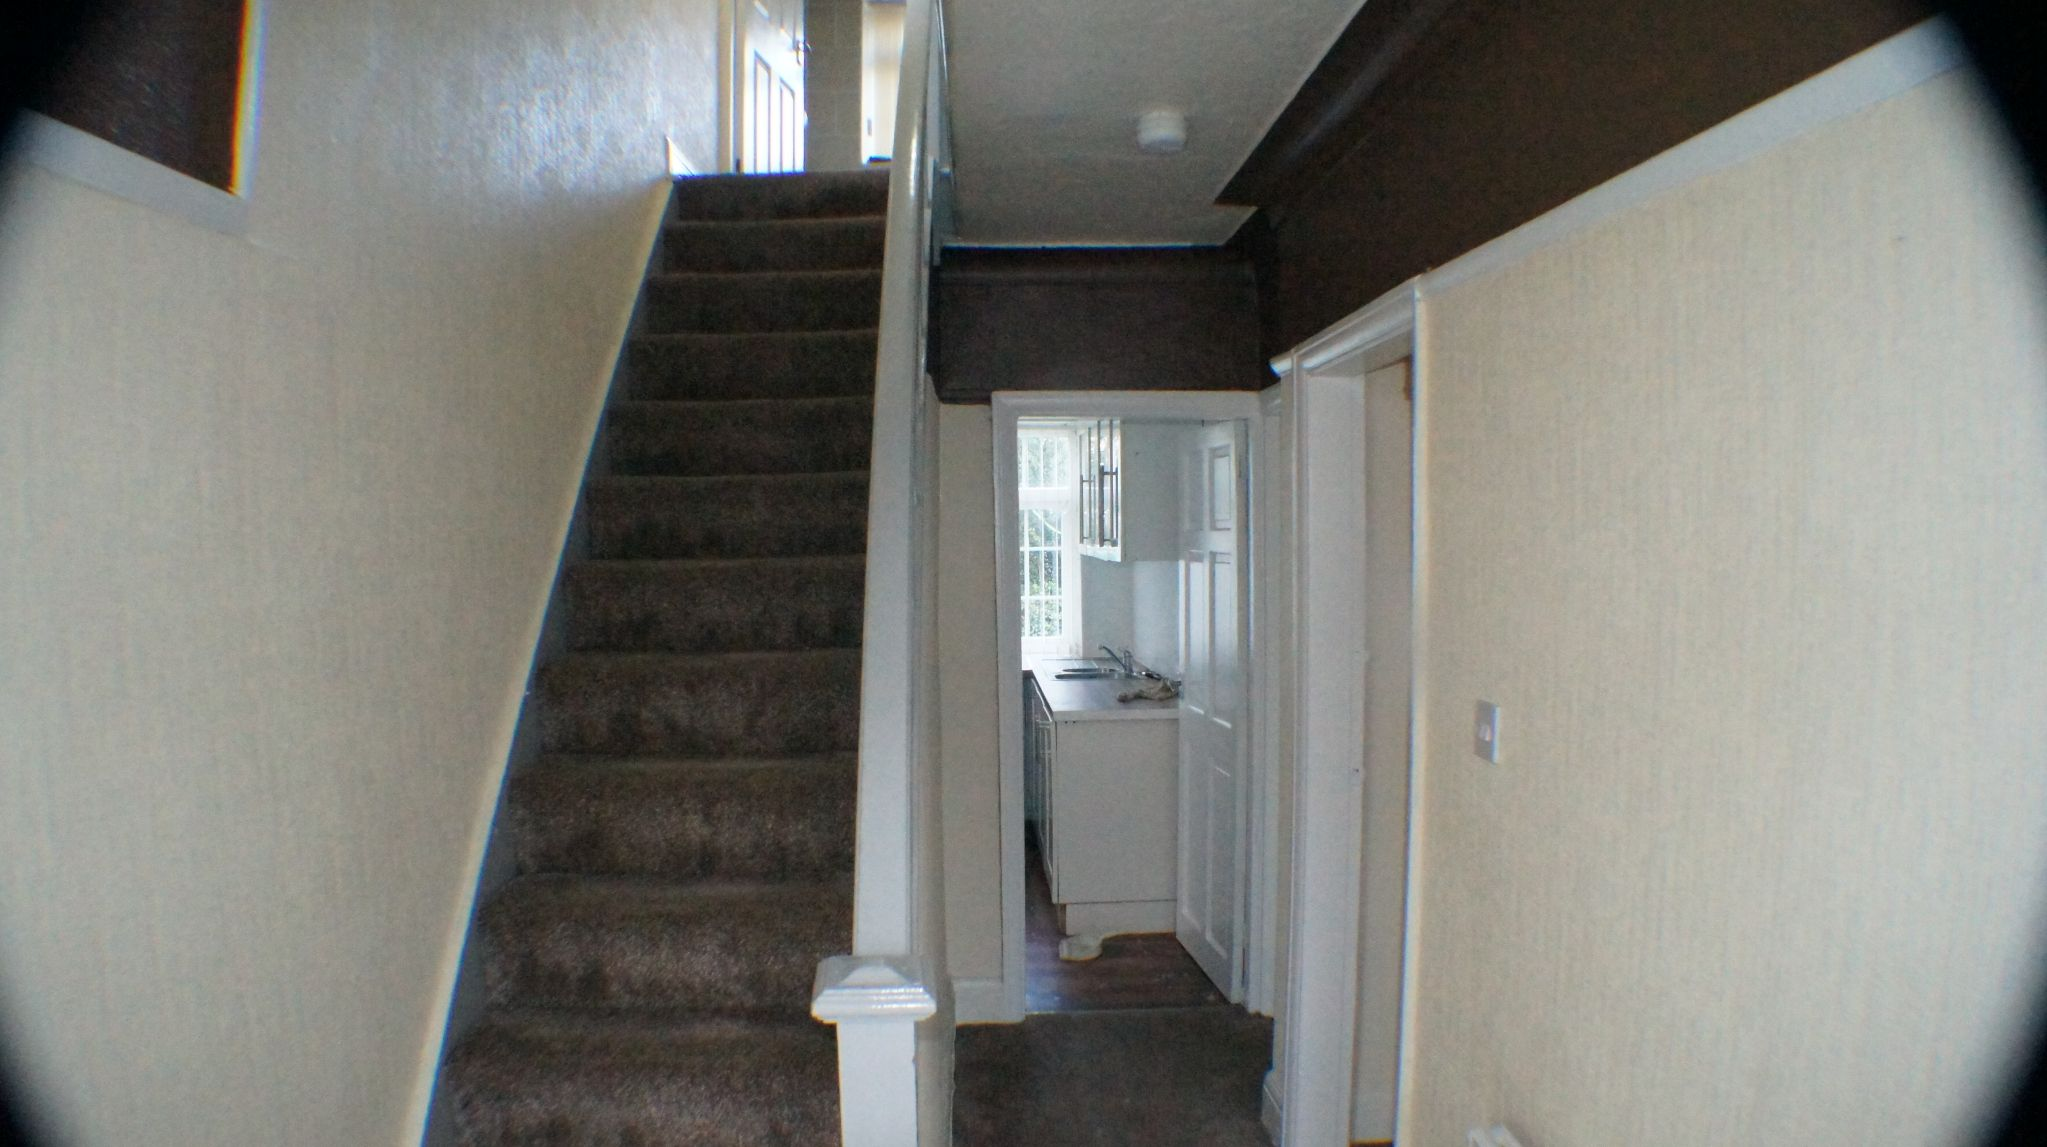 3 bedroom semi-detached house Let Agreed in Bradford - Photograph 2.